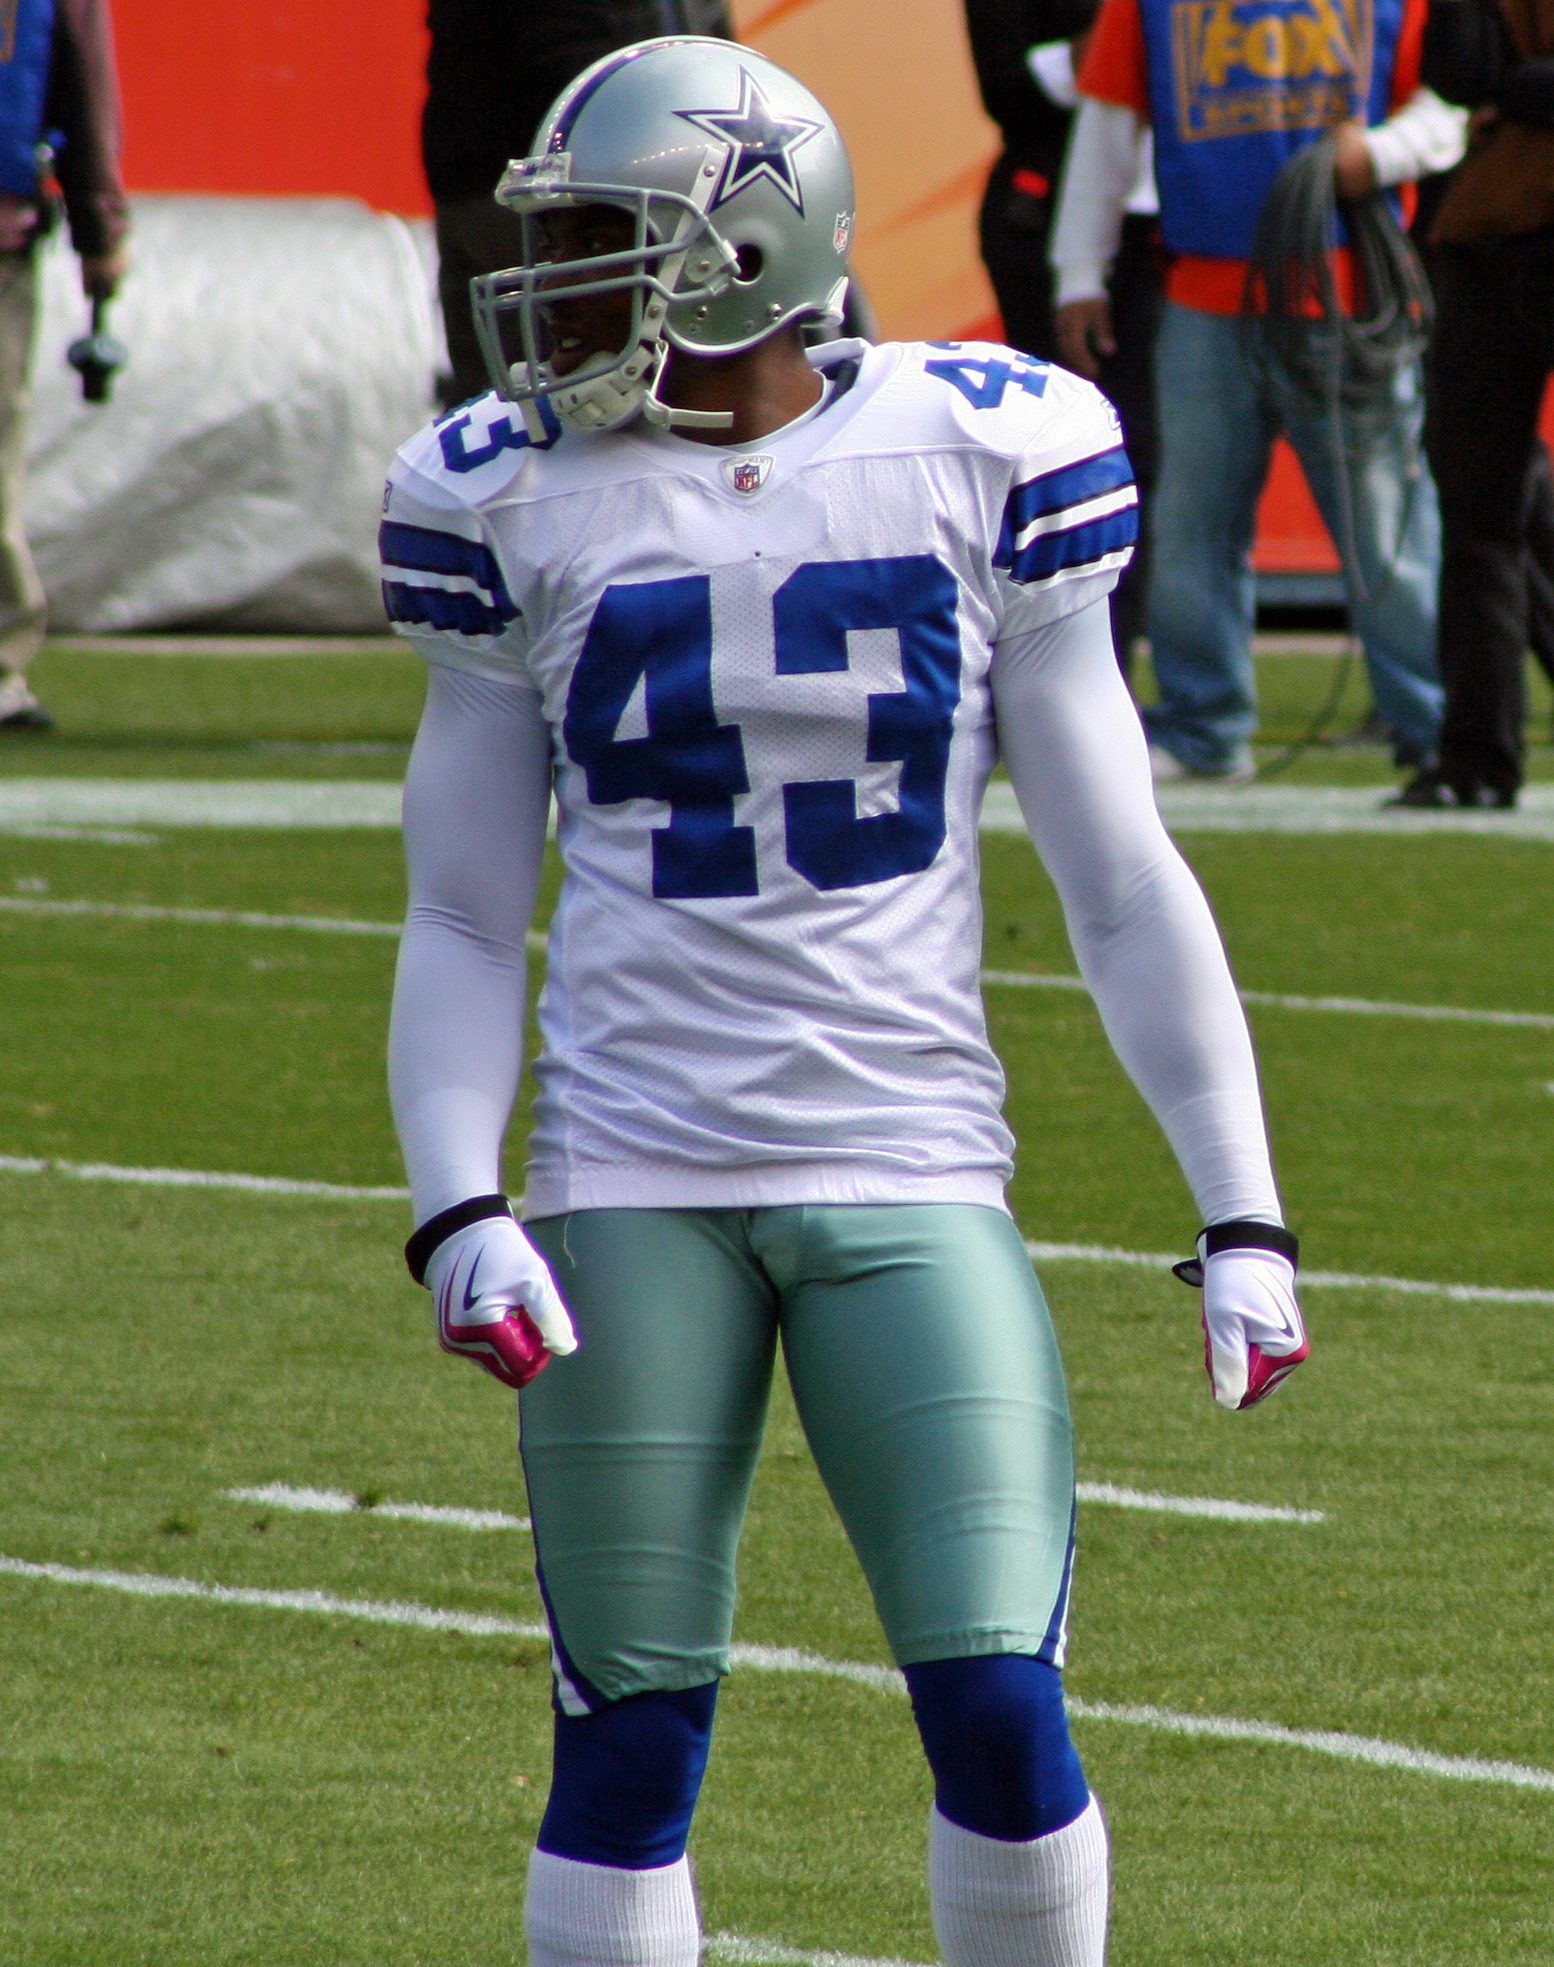 Orlando Scandrick Bulge http://www.lpsg.com/157989-anyone-see-any-nfl-bulges-3.html